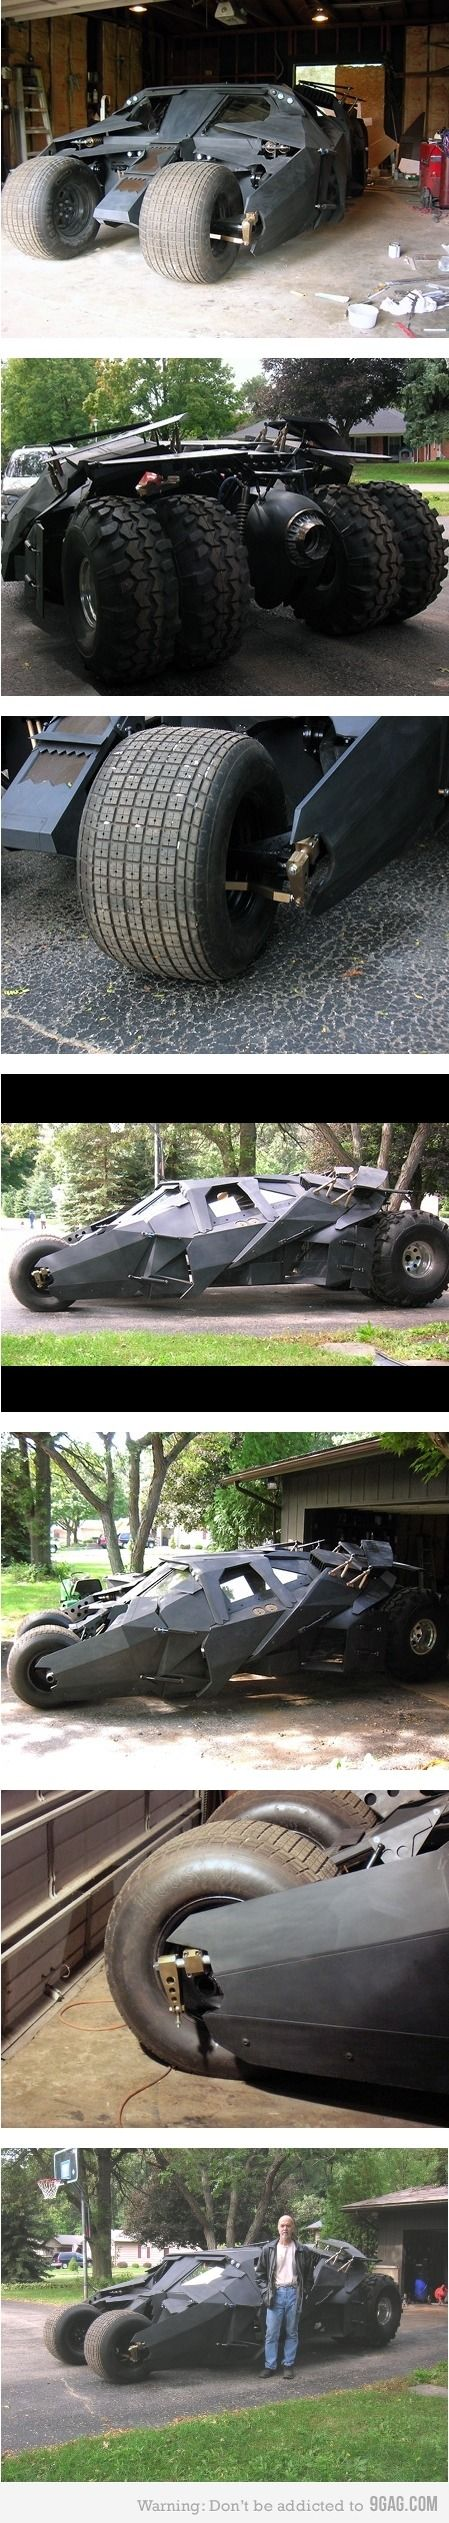 Awesome homemade Batman Tumbler!